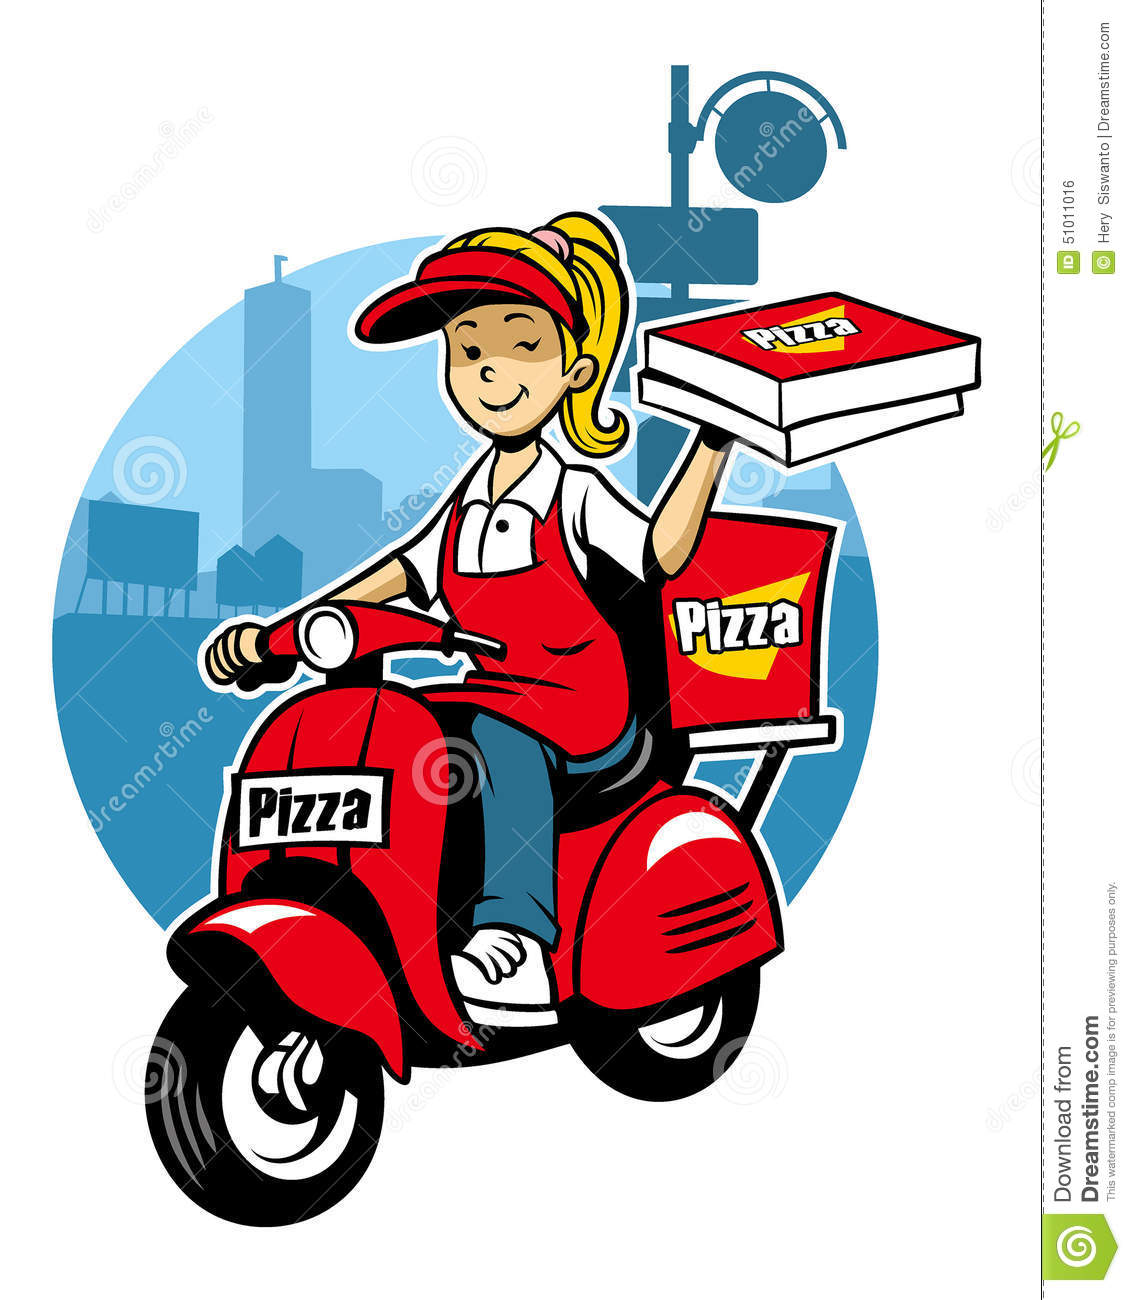 marketing pizza delivery Market research report on the 100% home delivery pizza 100% home delivery/takeaway expanded in value steadily during corporate and marketing.